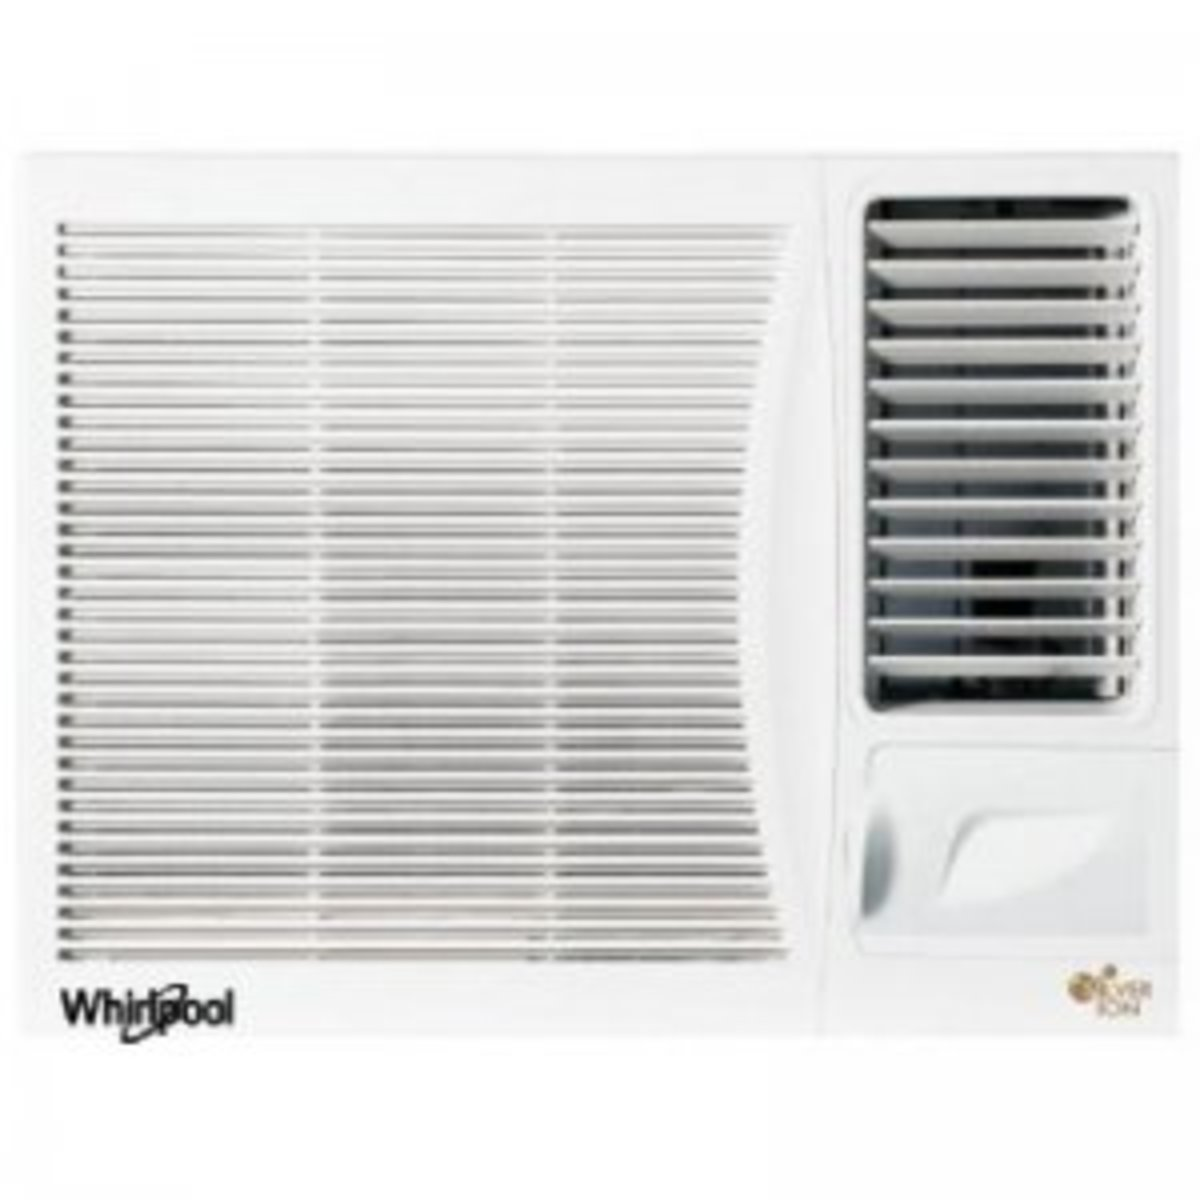 AWA07510N 3/4HP Window Type Air Conditioner  Hong Kong Warranty Genuine Products